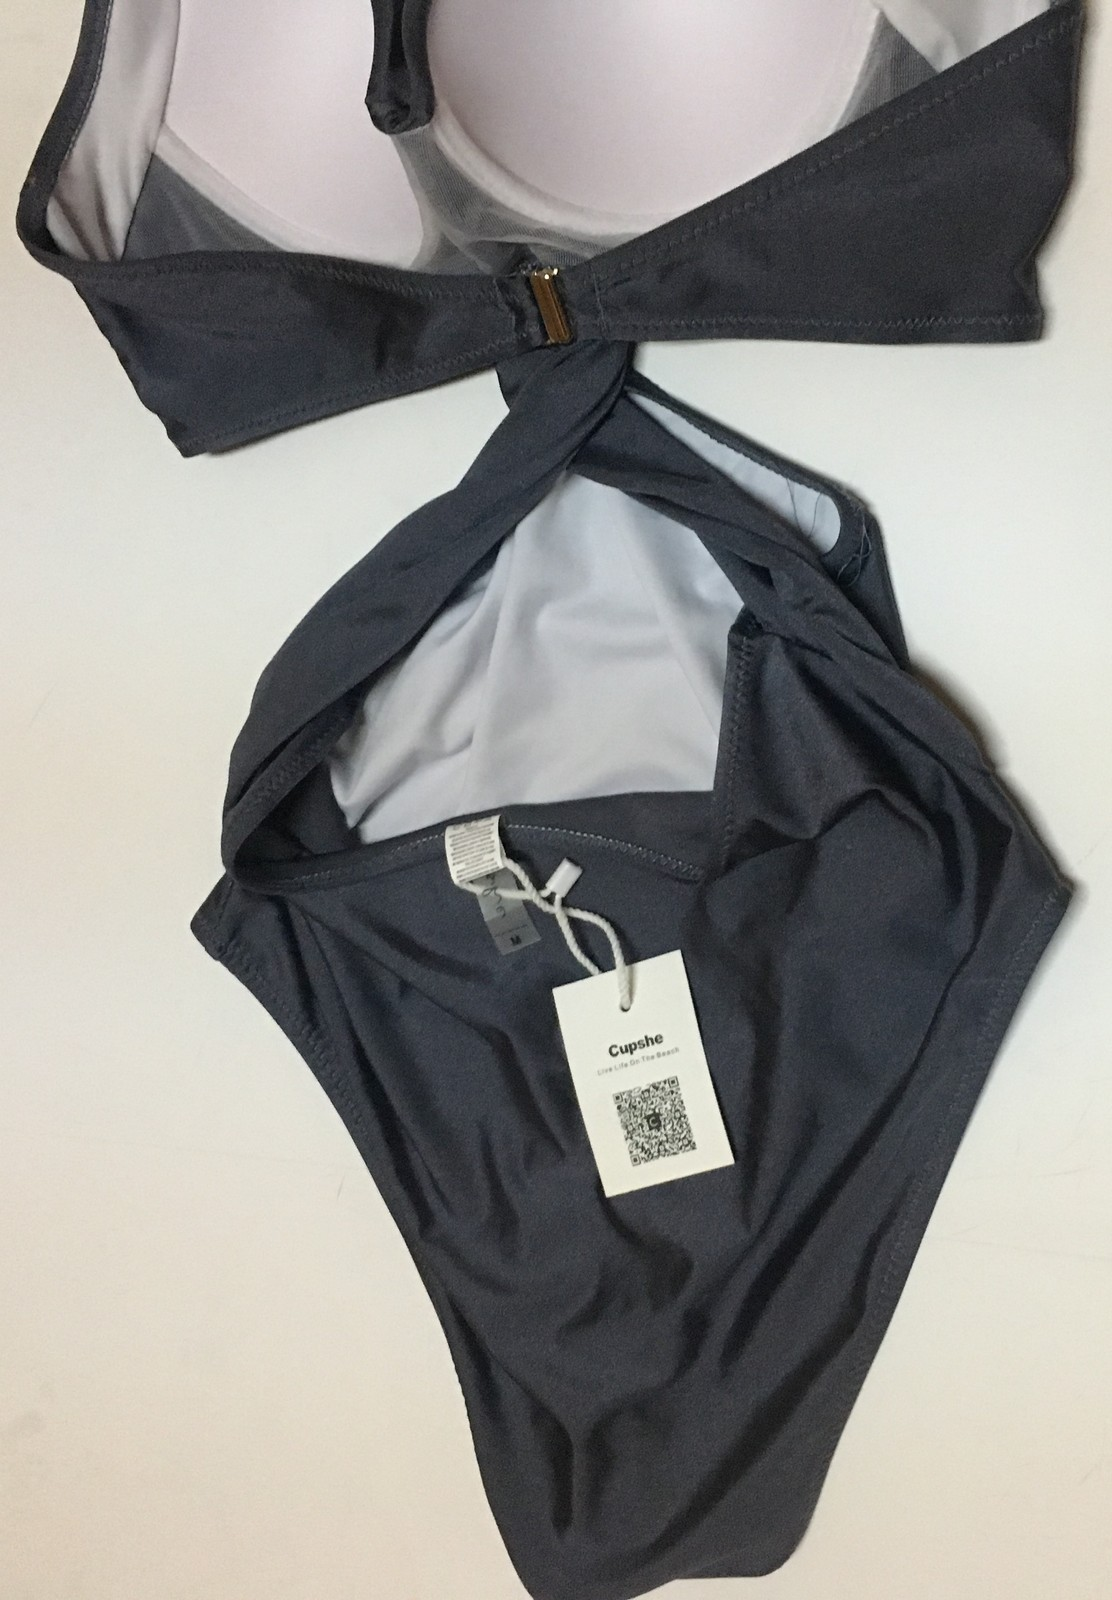 CUPSHE One Piece Swimsuit Silver Padded NWT Sz M